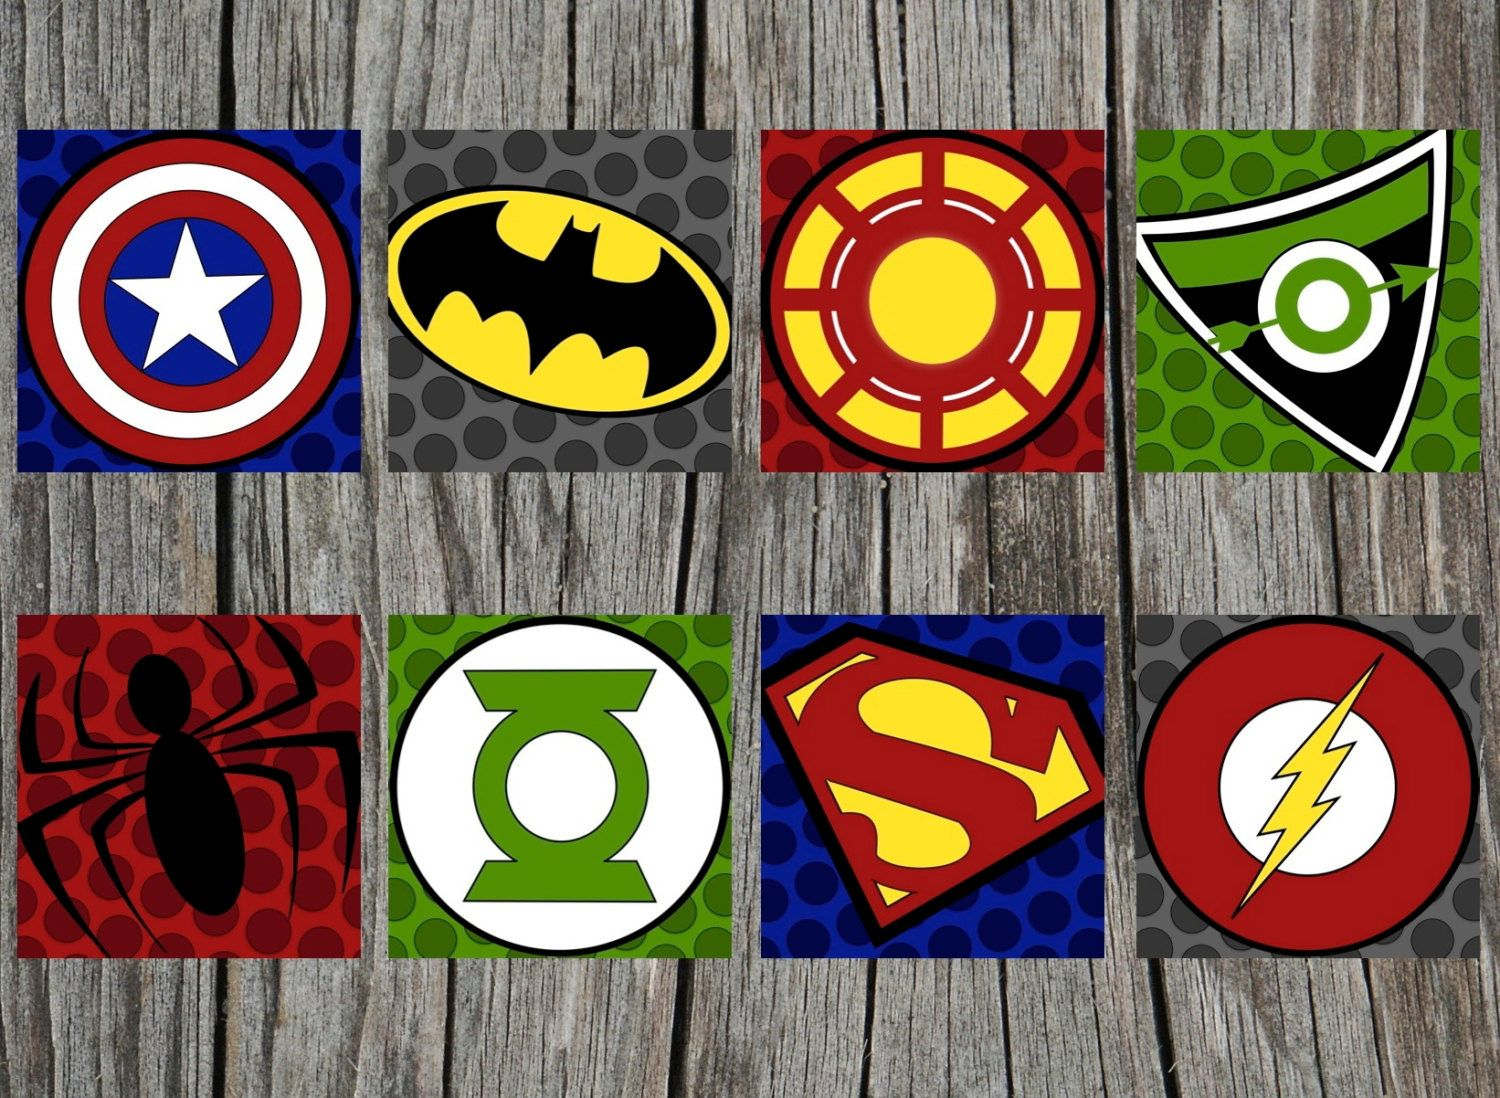 17 Best images about Comics on Pinterest | Superhero logos, Iron ...